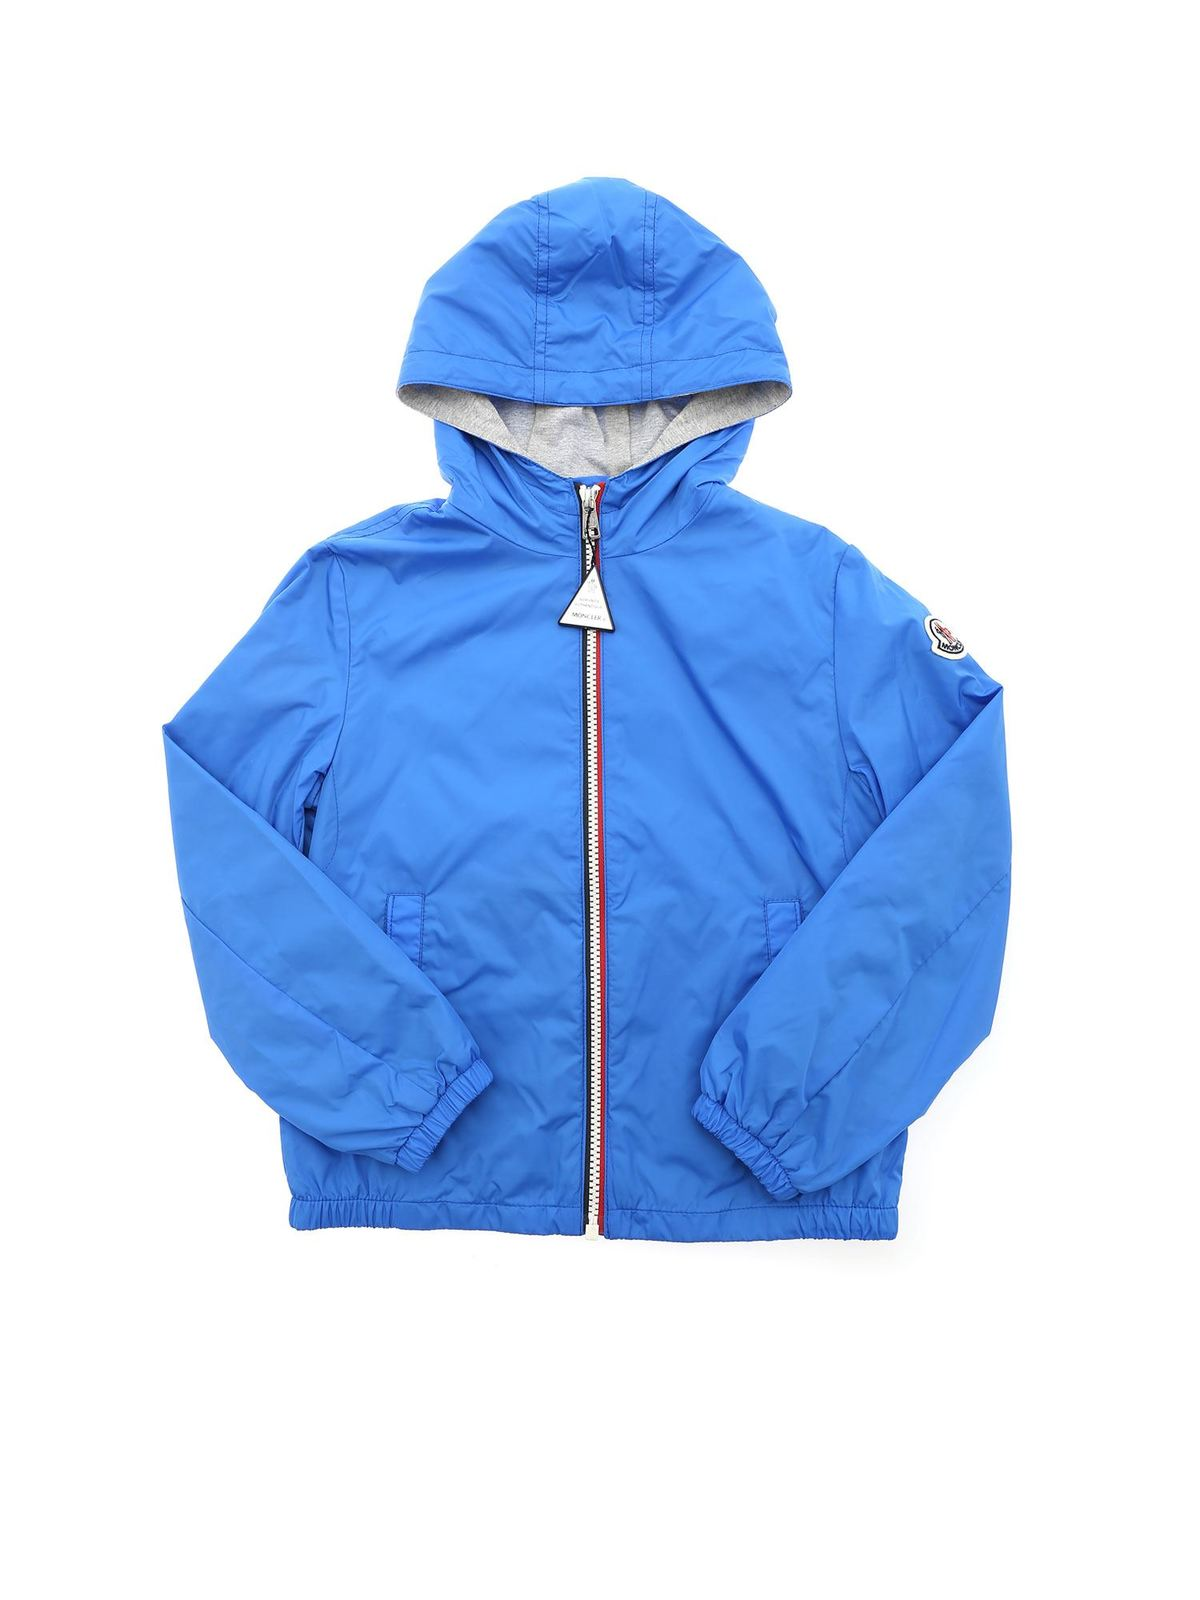 MONCLER JR NEW URVILLE JACKET IN TURQUOISE